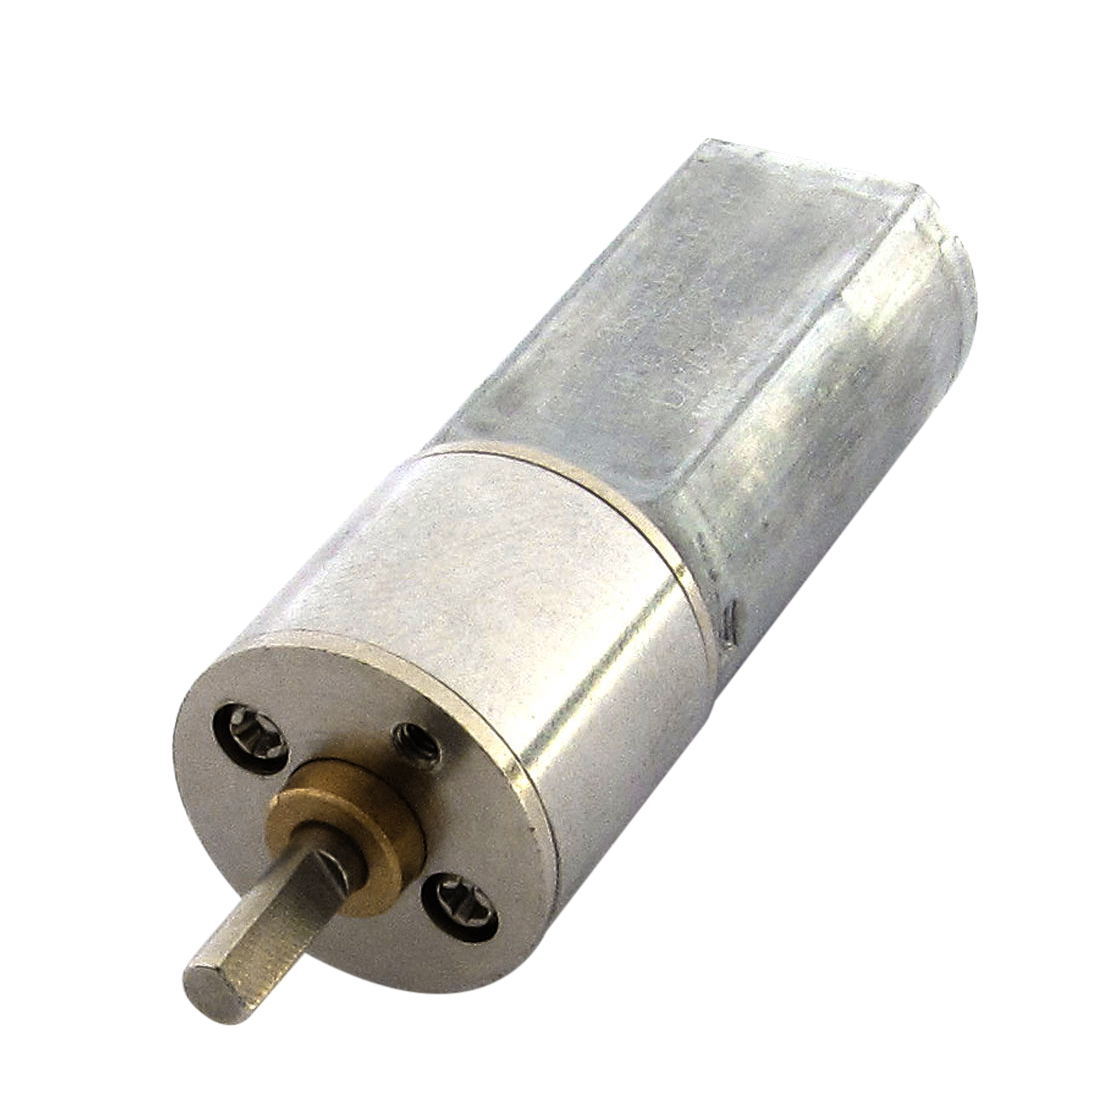 12V 300RPM 3mm Shaft 16mm Diameter DC Geared Motor w Reduction Gearbox